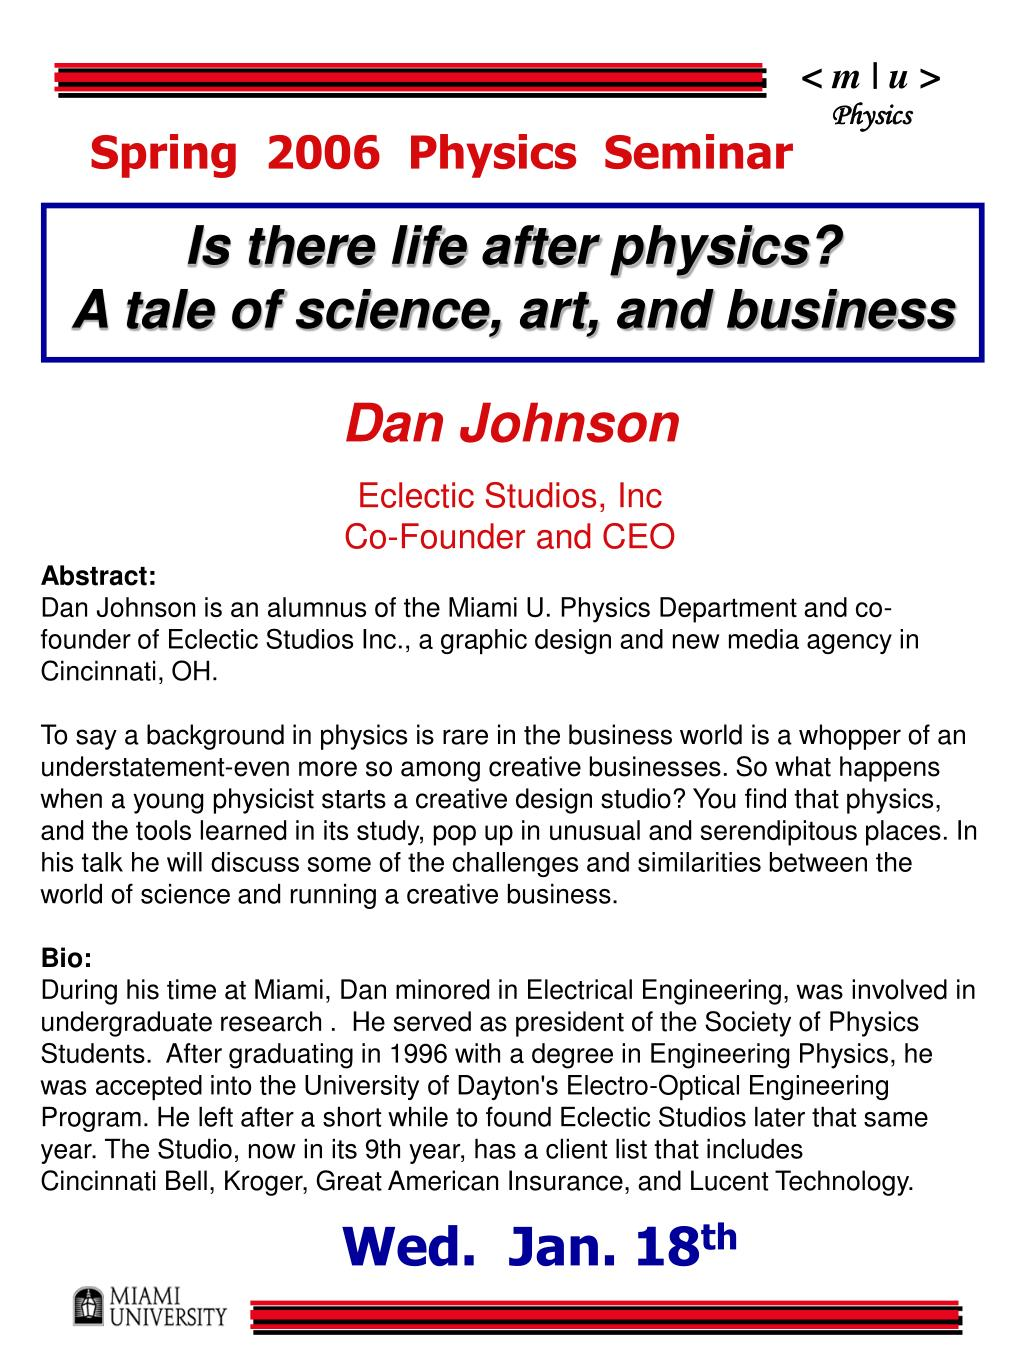 Is there life after physics?